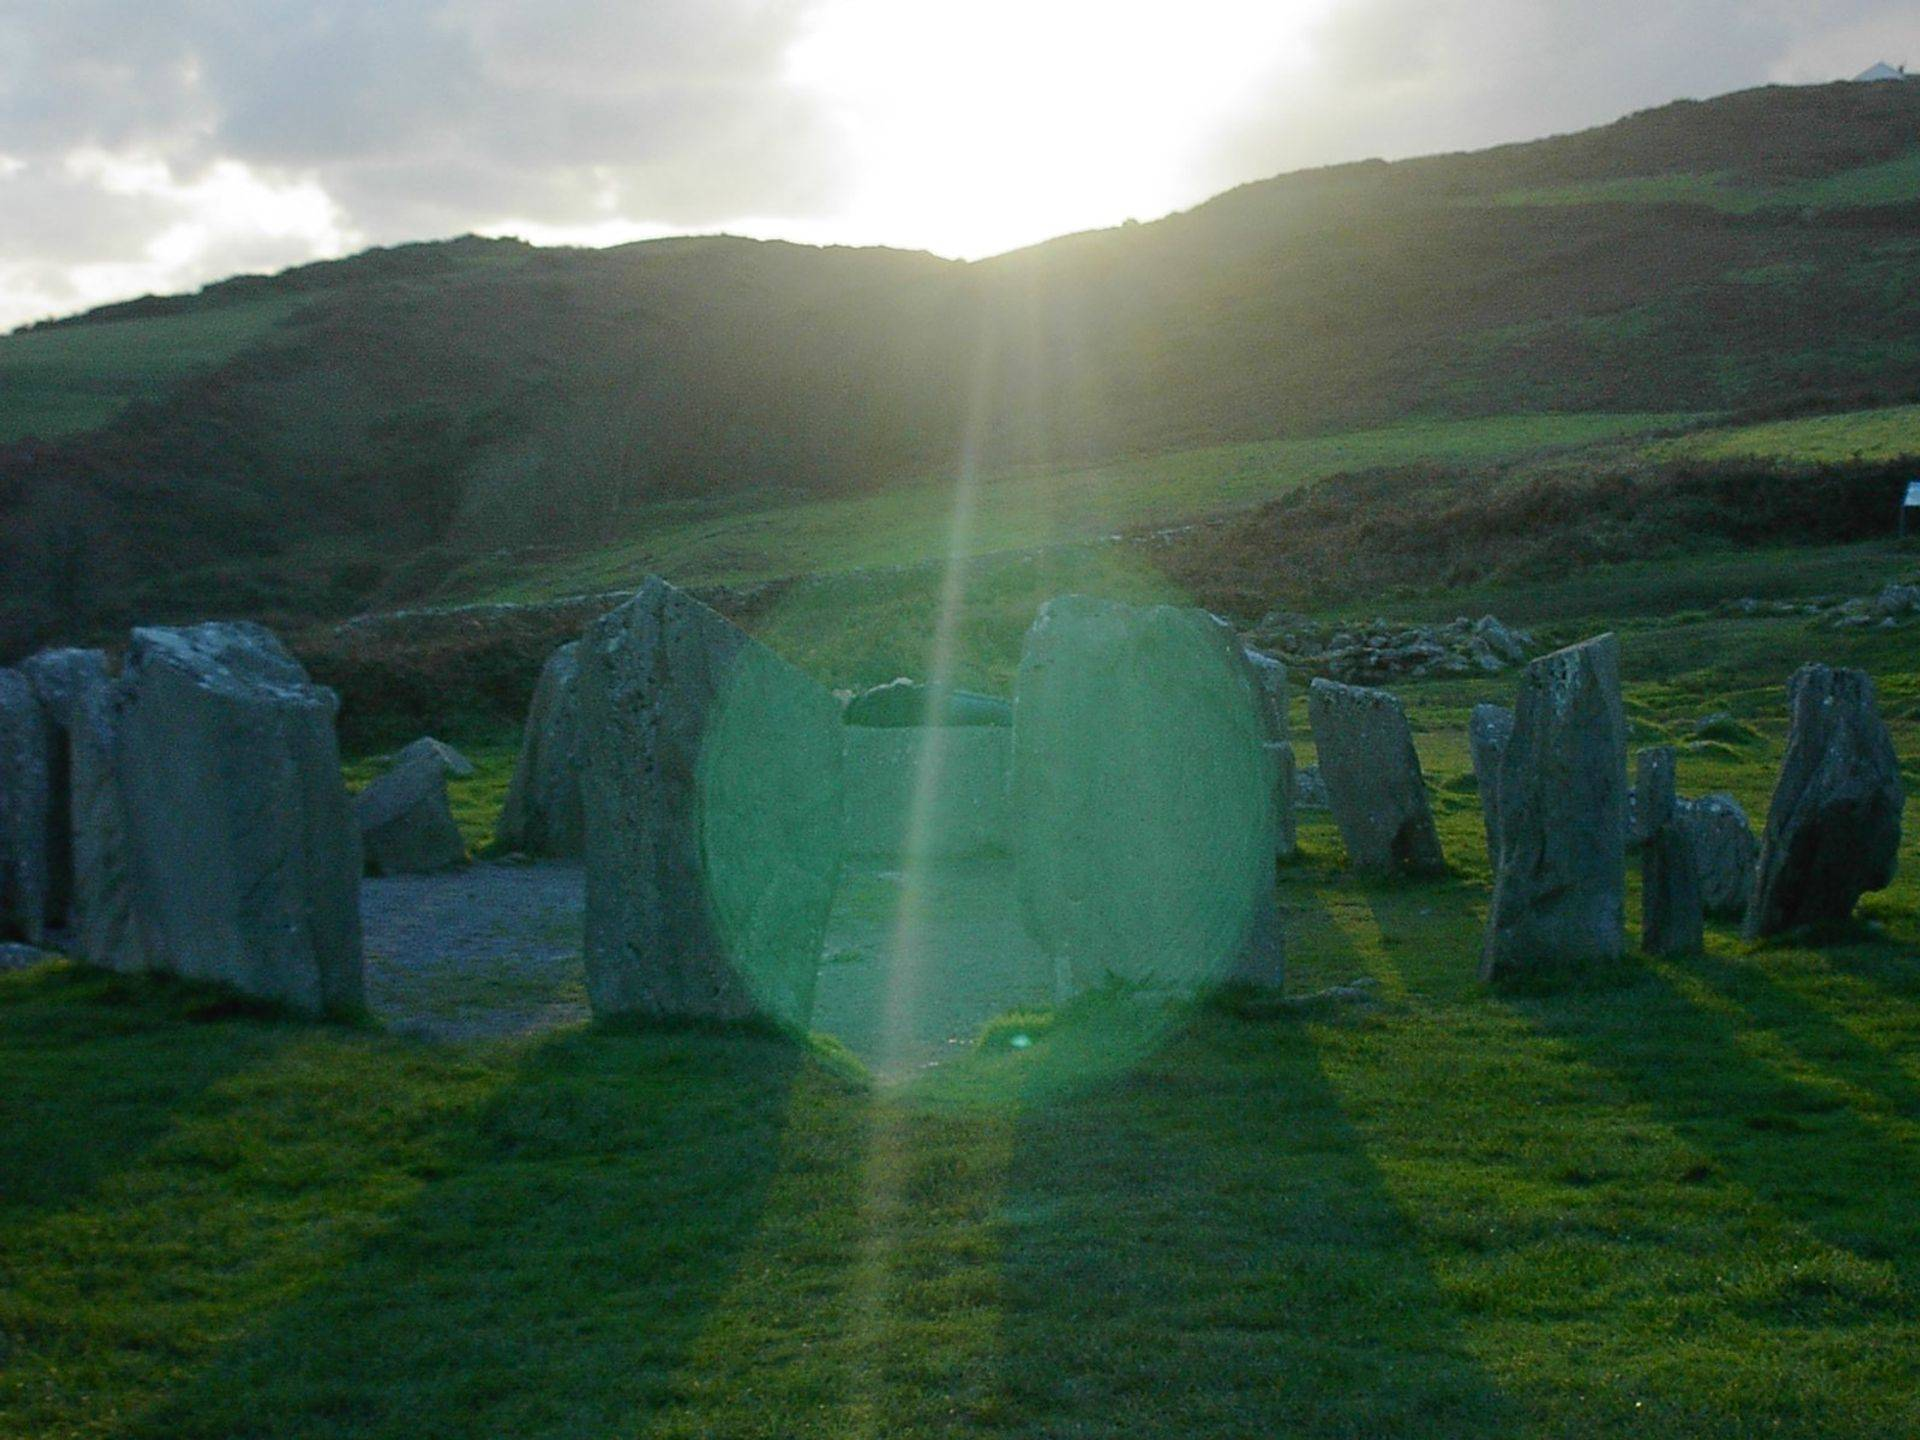 Winter Solstice at Drumbeg Stone Circle